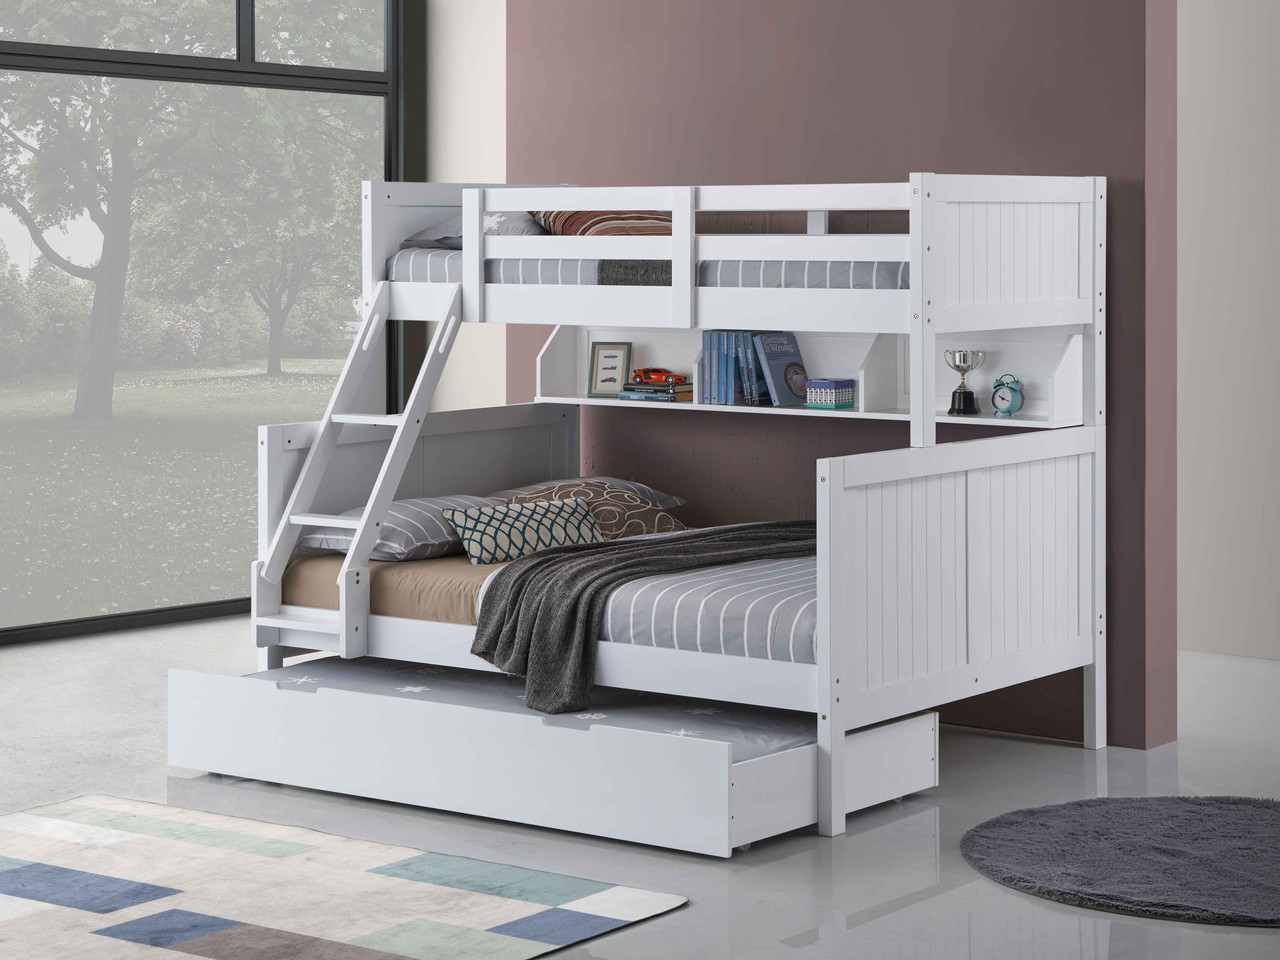 Regatta Single Over Double Bunk with Single Trundle features a modern style bunk bed with an closed slated head and foot boards.